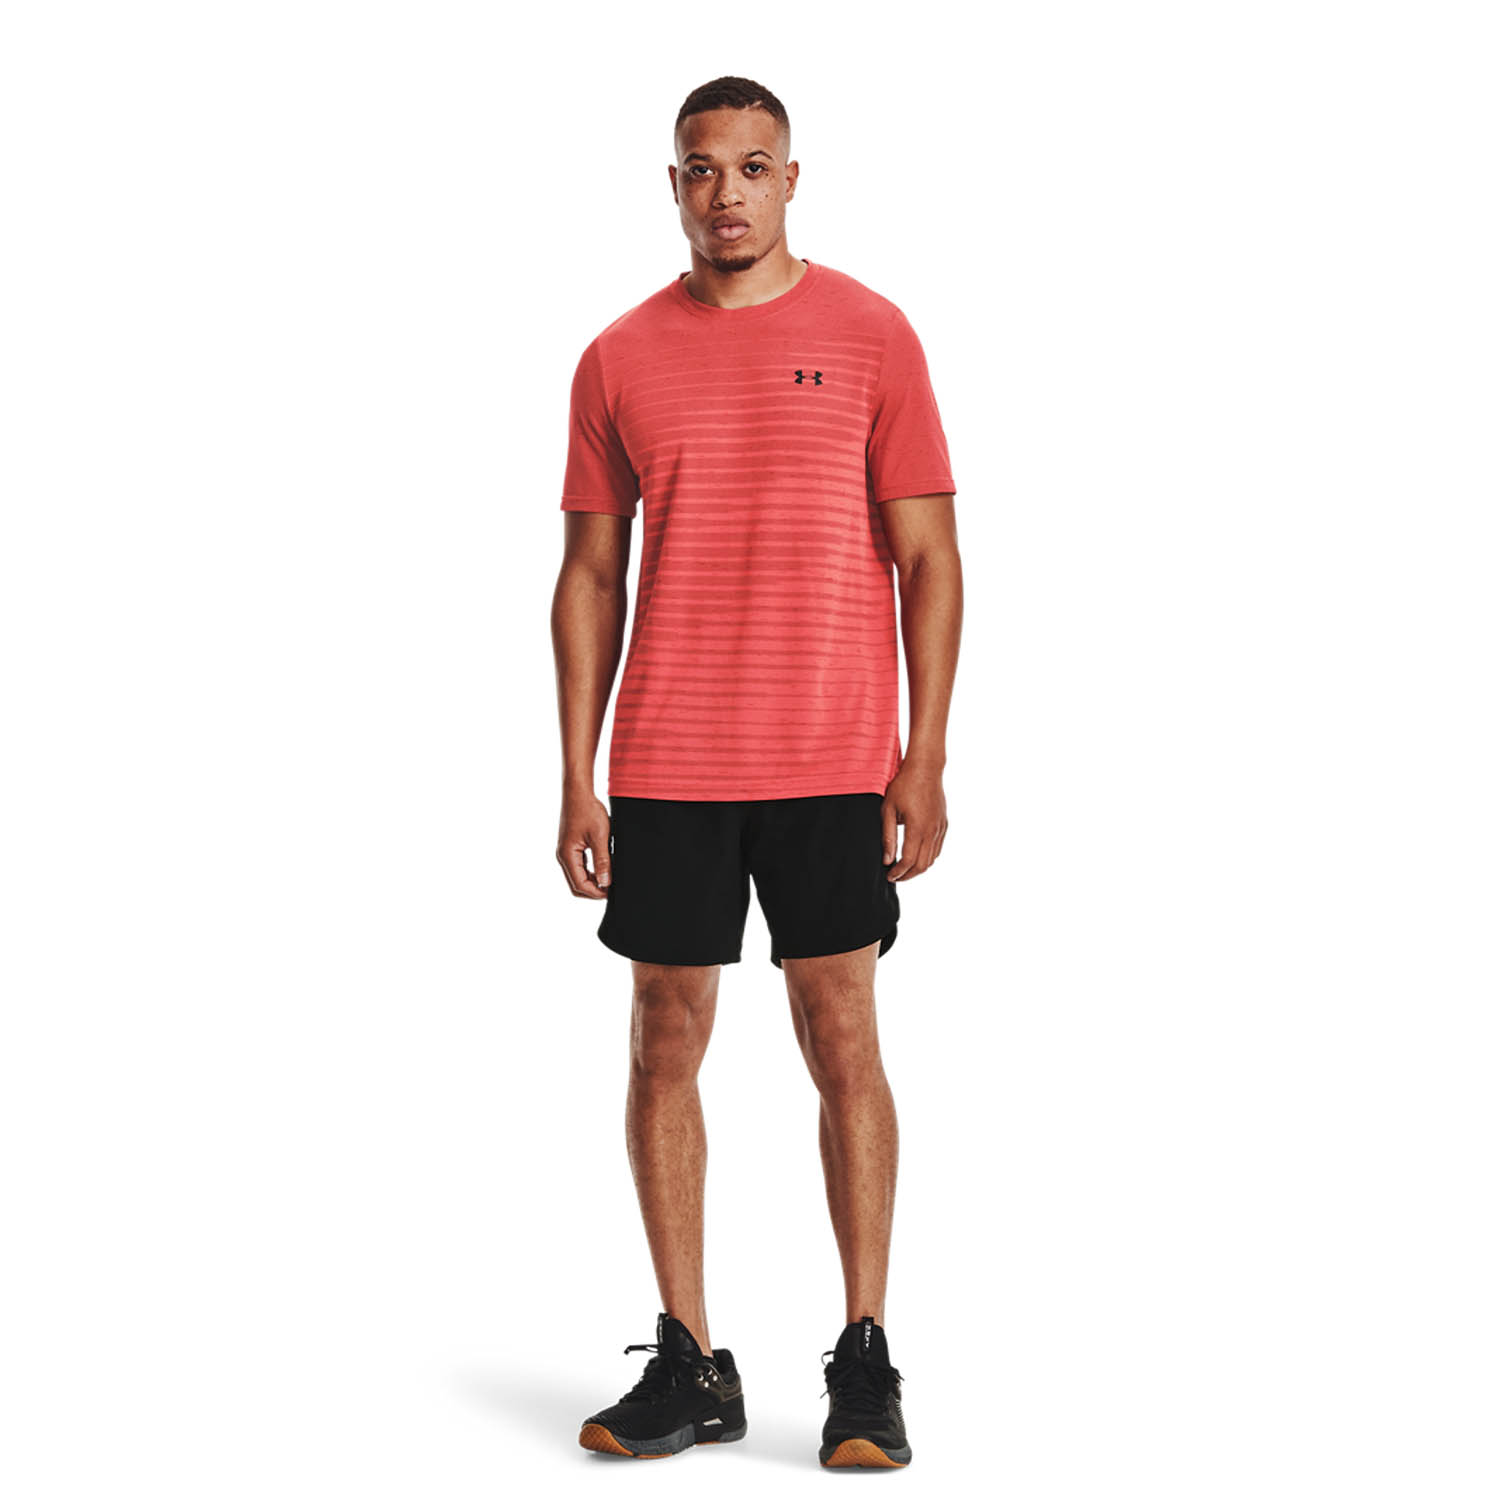 Under Armour Seamless Fade T-Shirt - Venom Red/Black